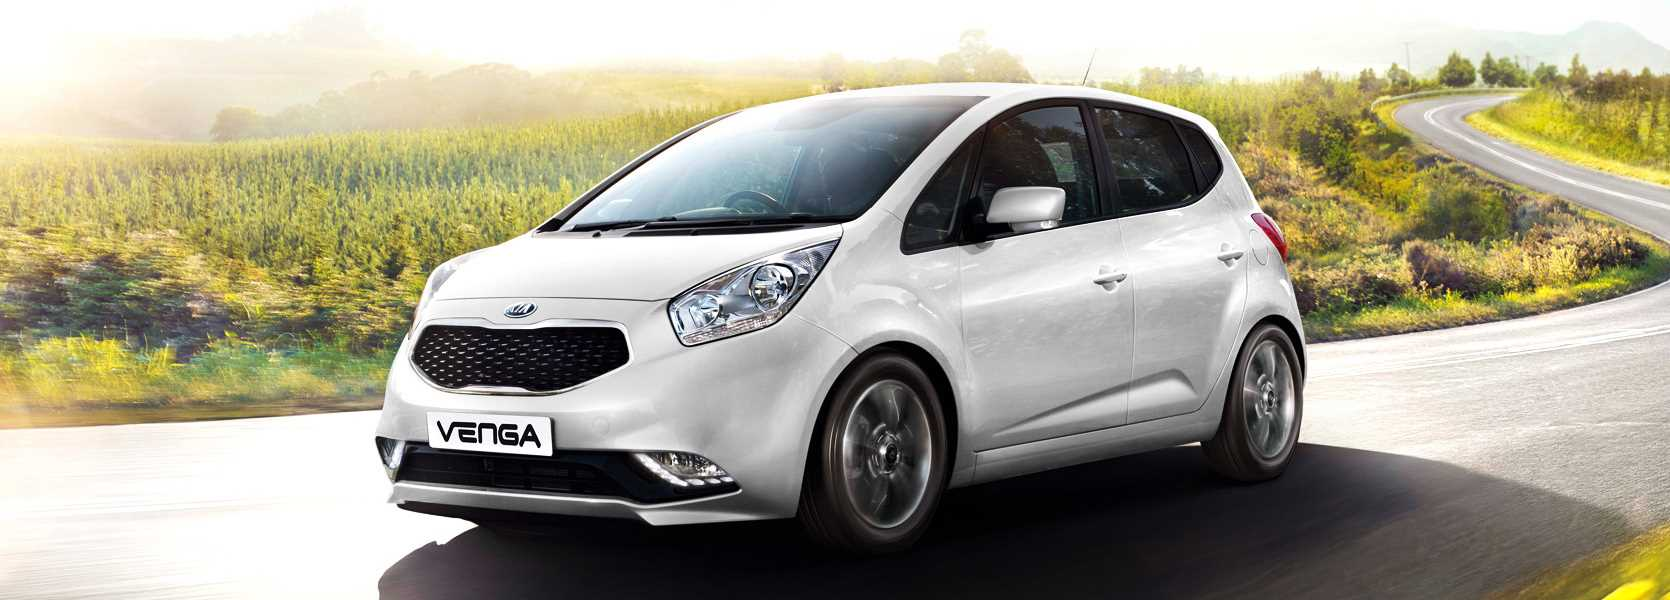 Kia Venga Available at Canterbury Kia